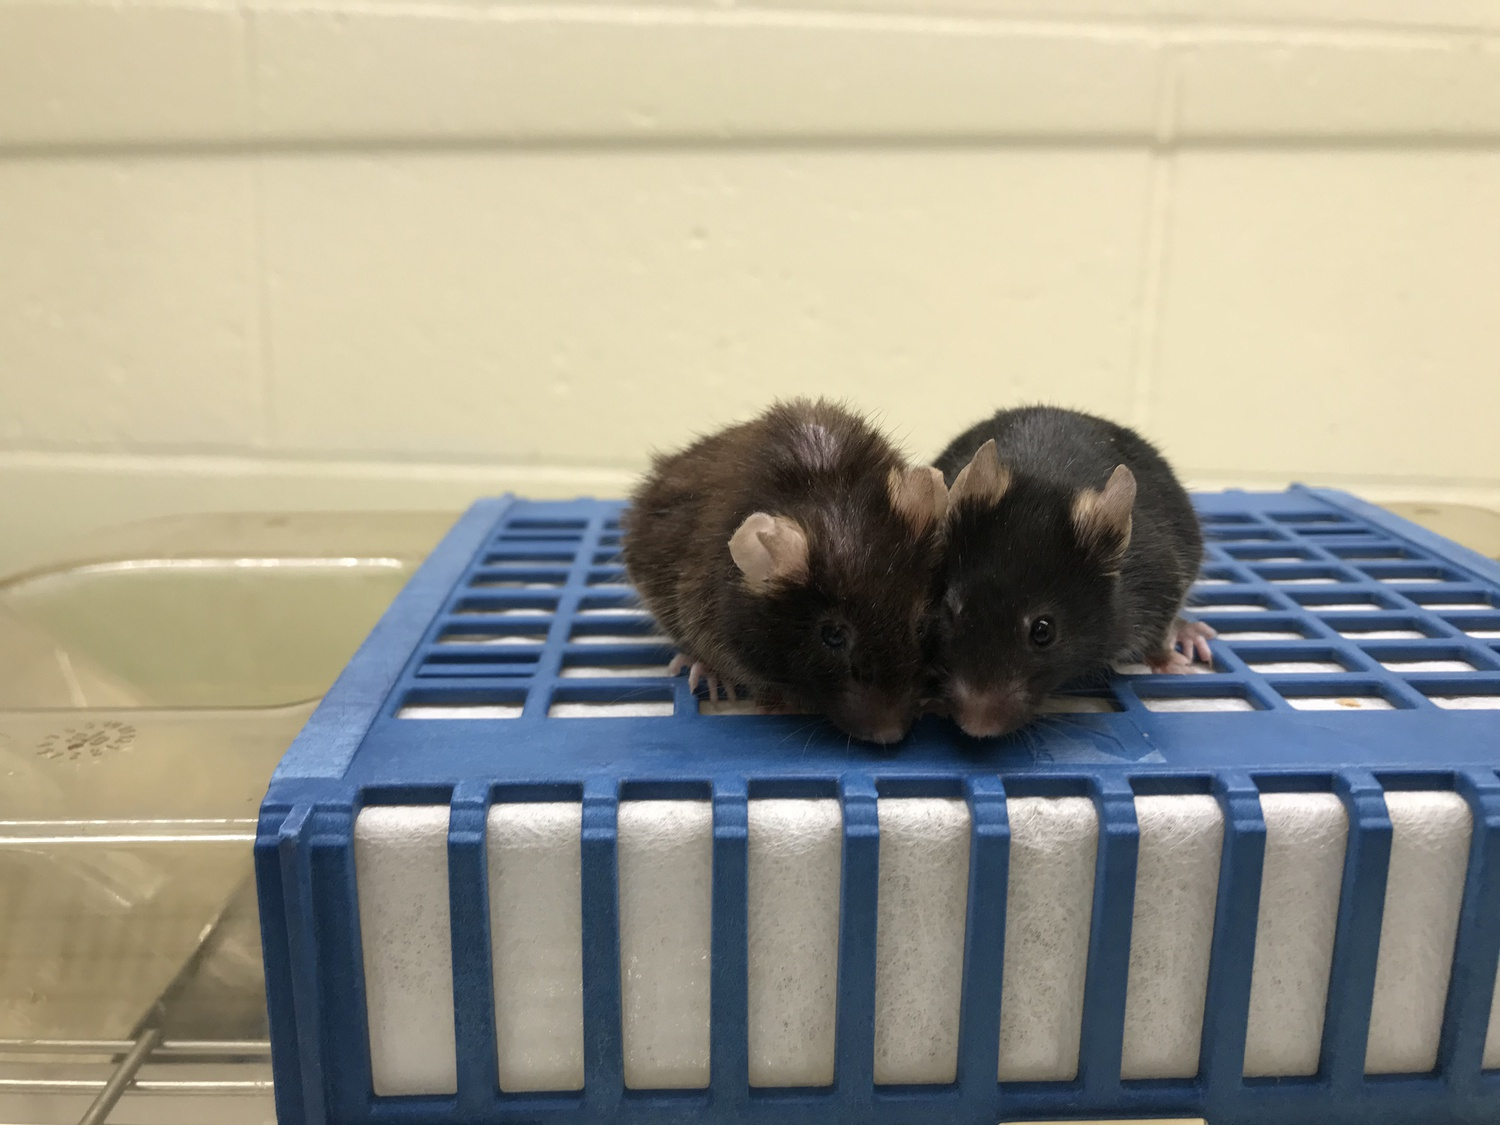 HMS researchers were able to predict the mice's lifespans with a small margin of error.